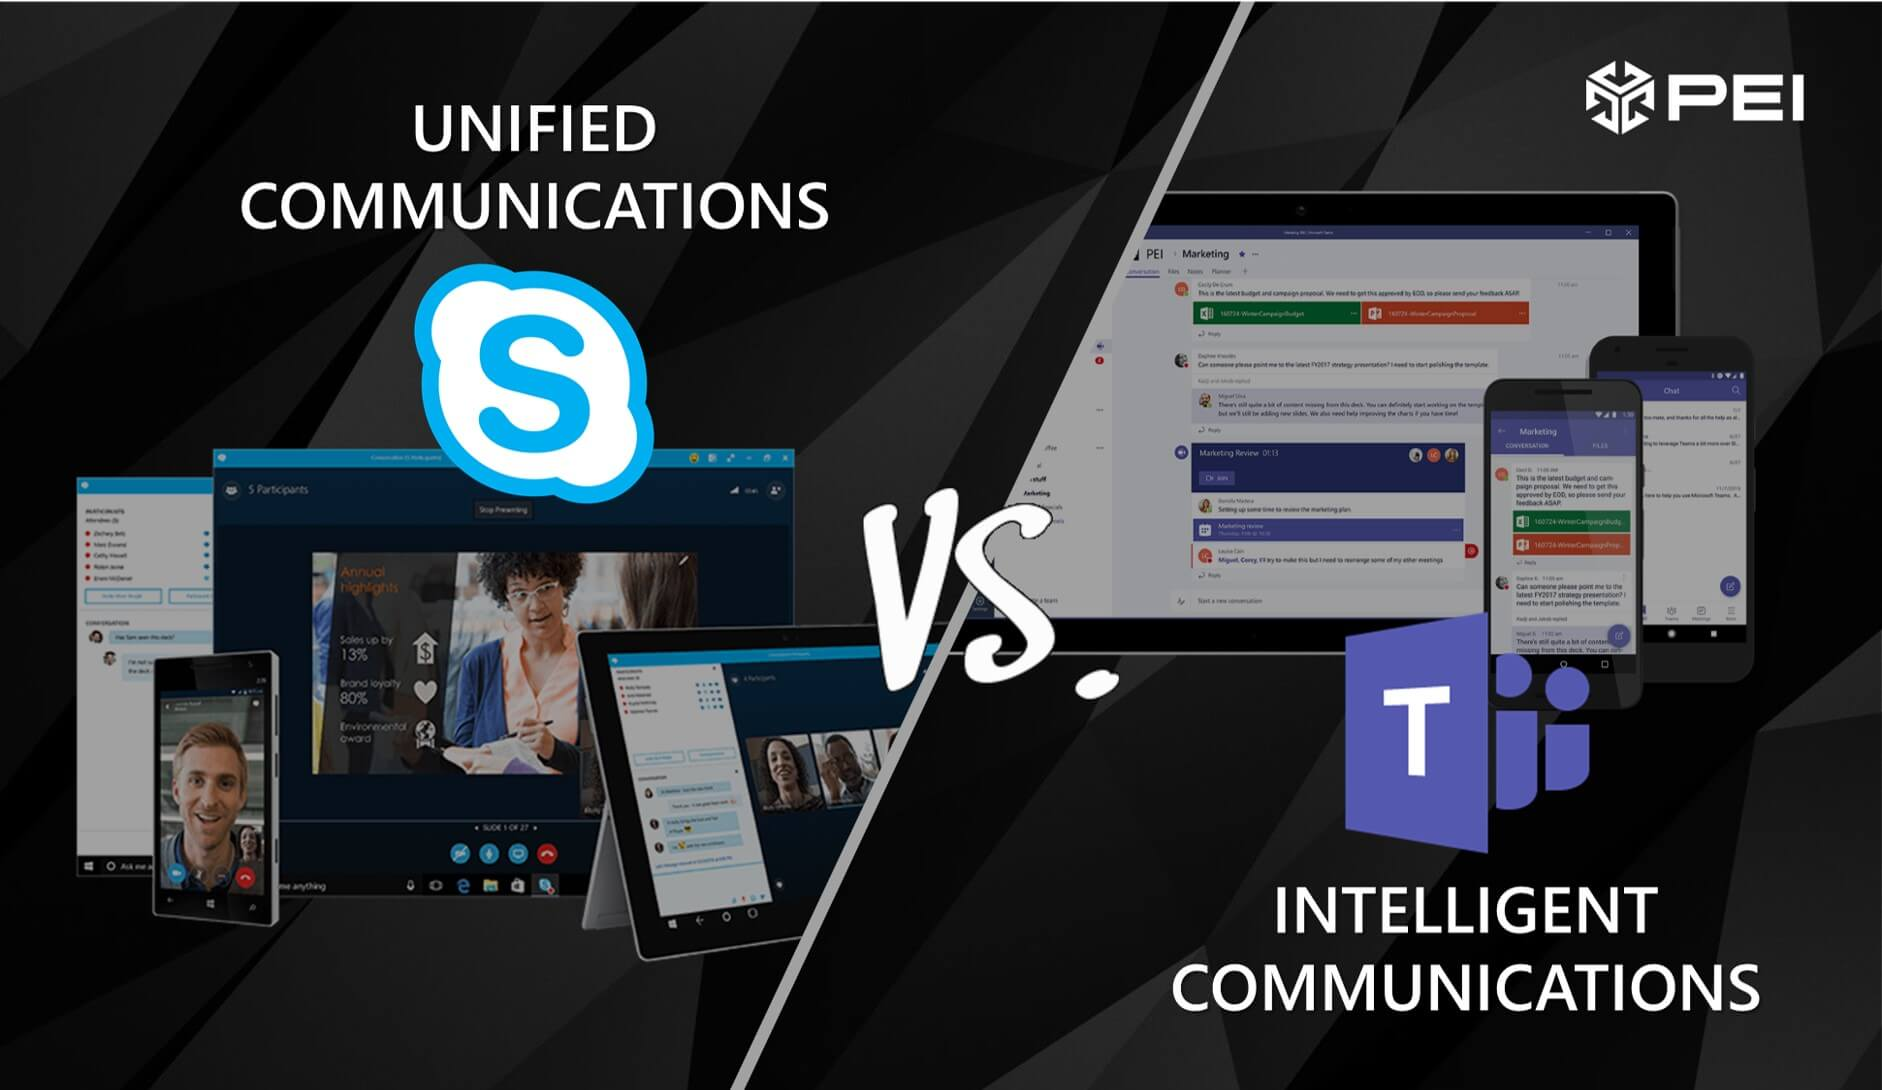 Unified communications vs intelligent communications words